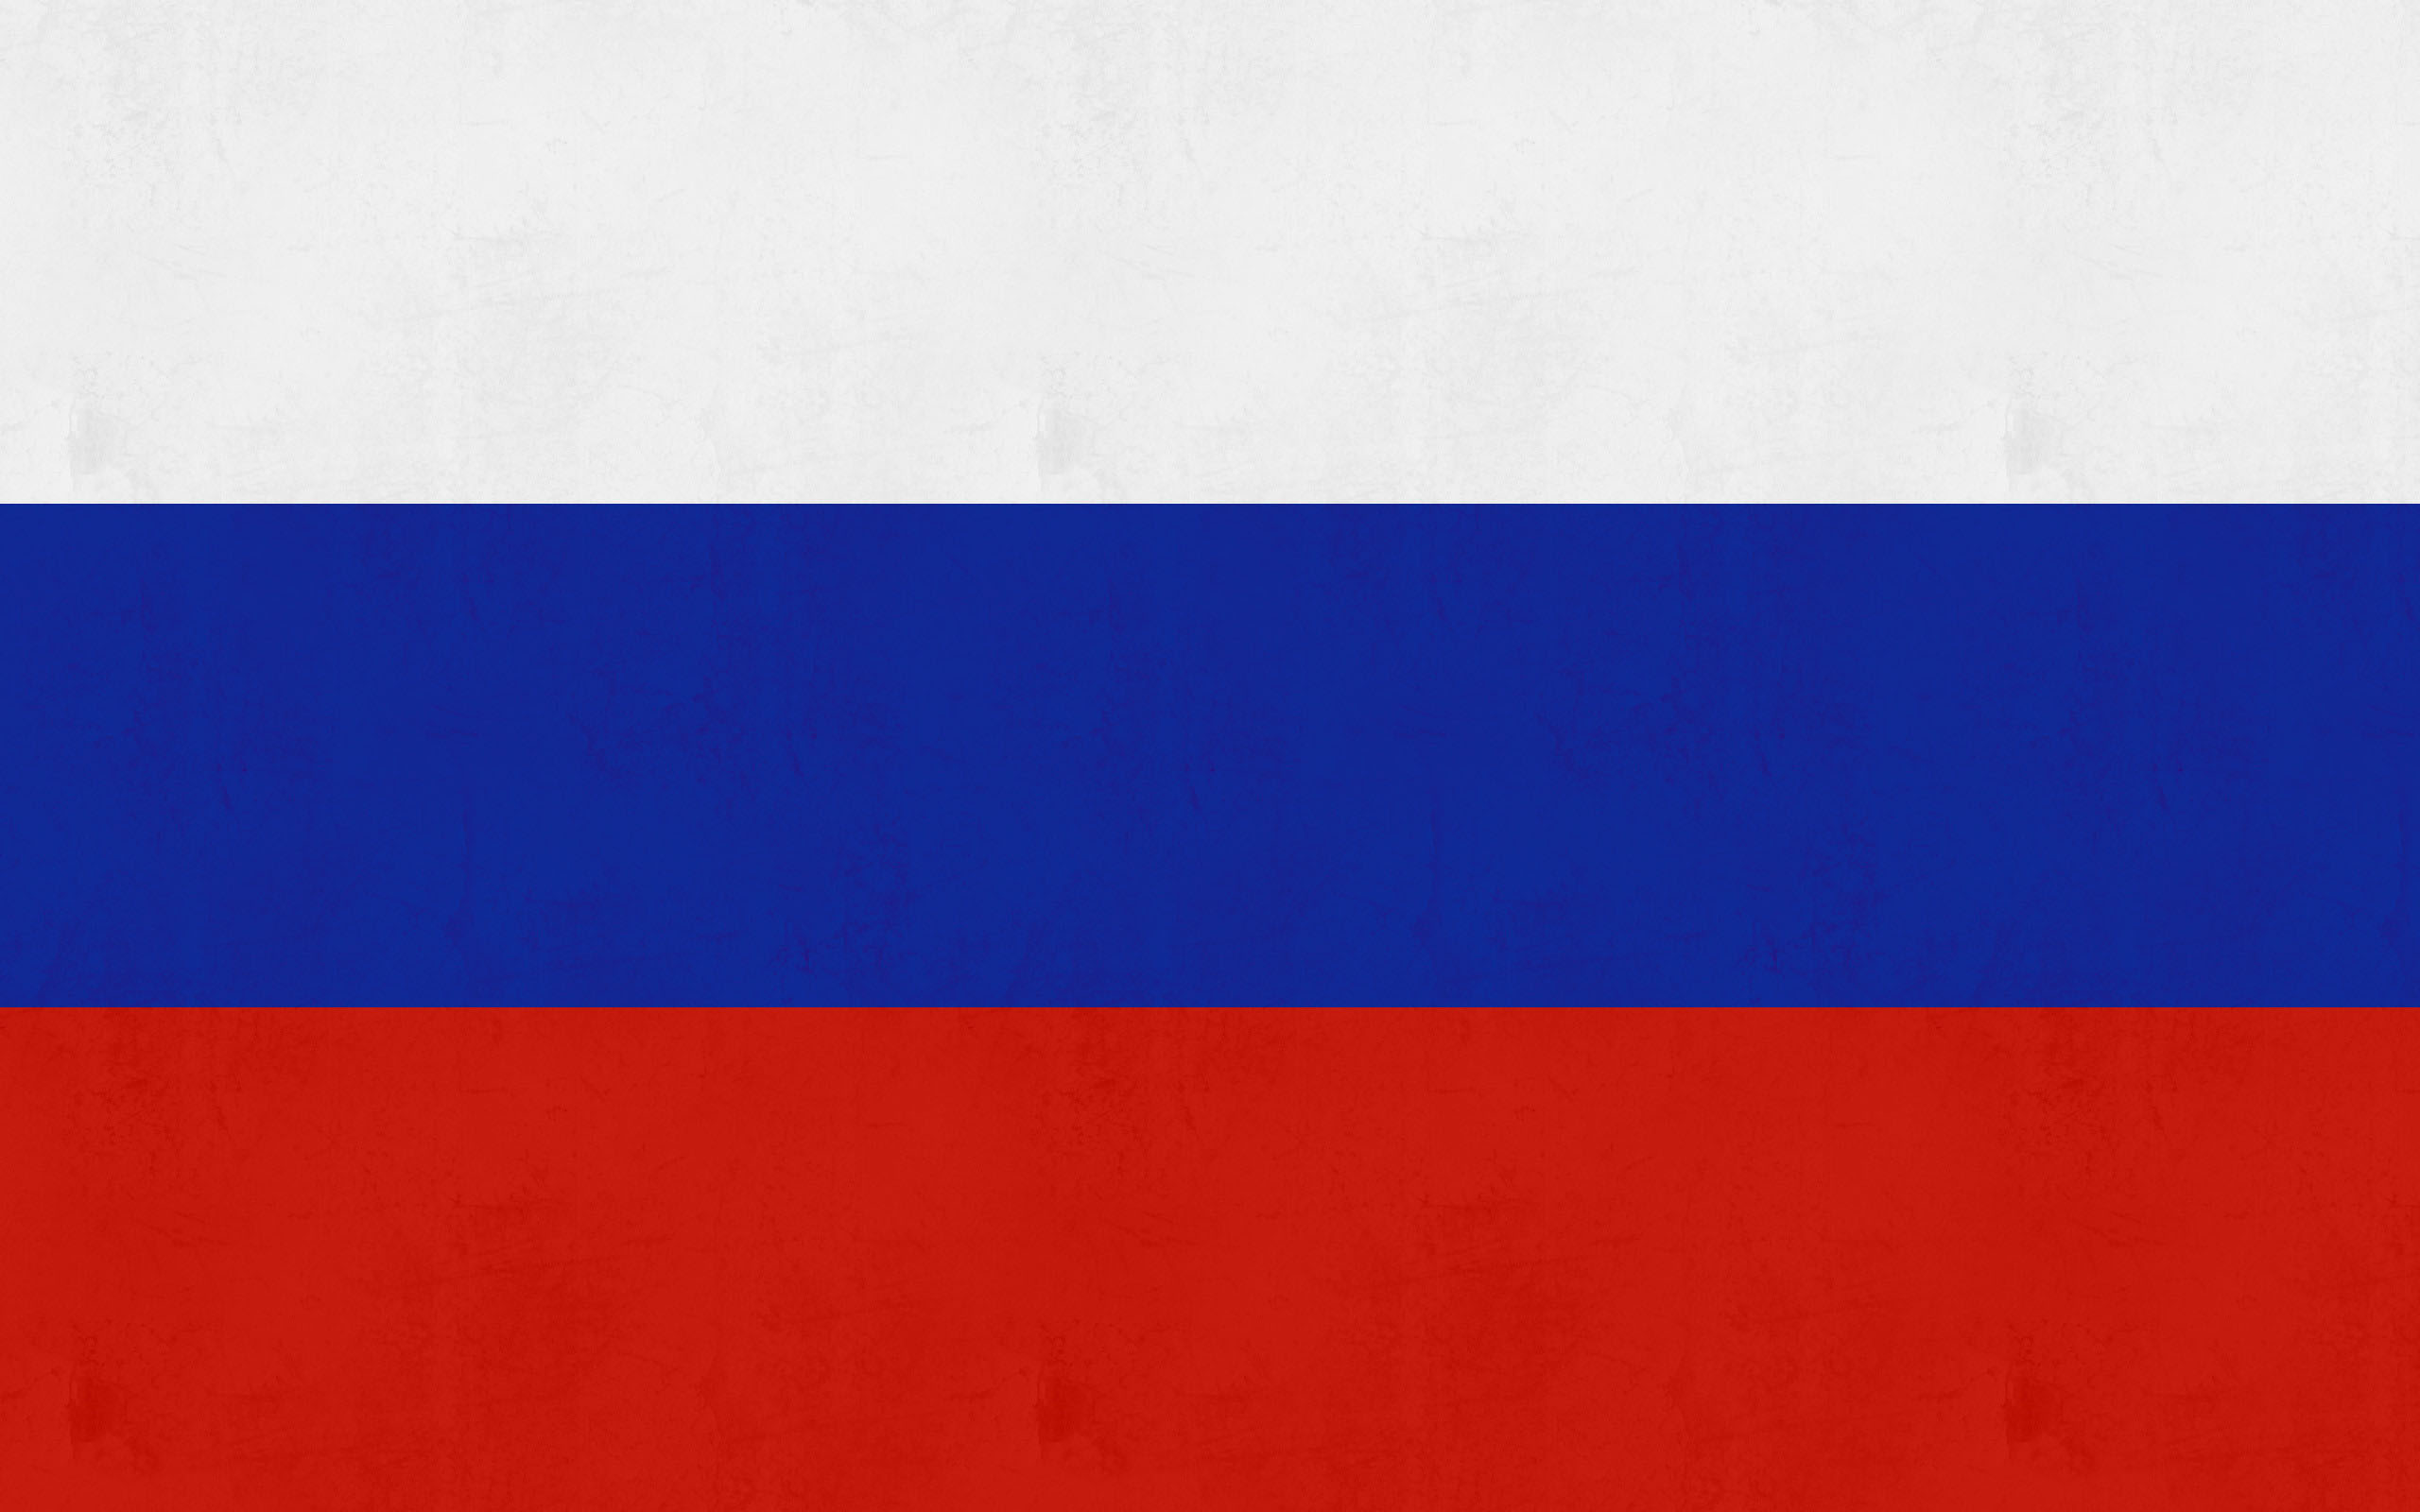 Russia's Flag EnchantedLearning.com